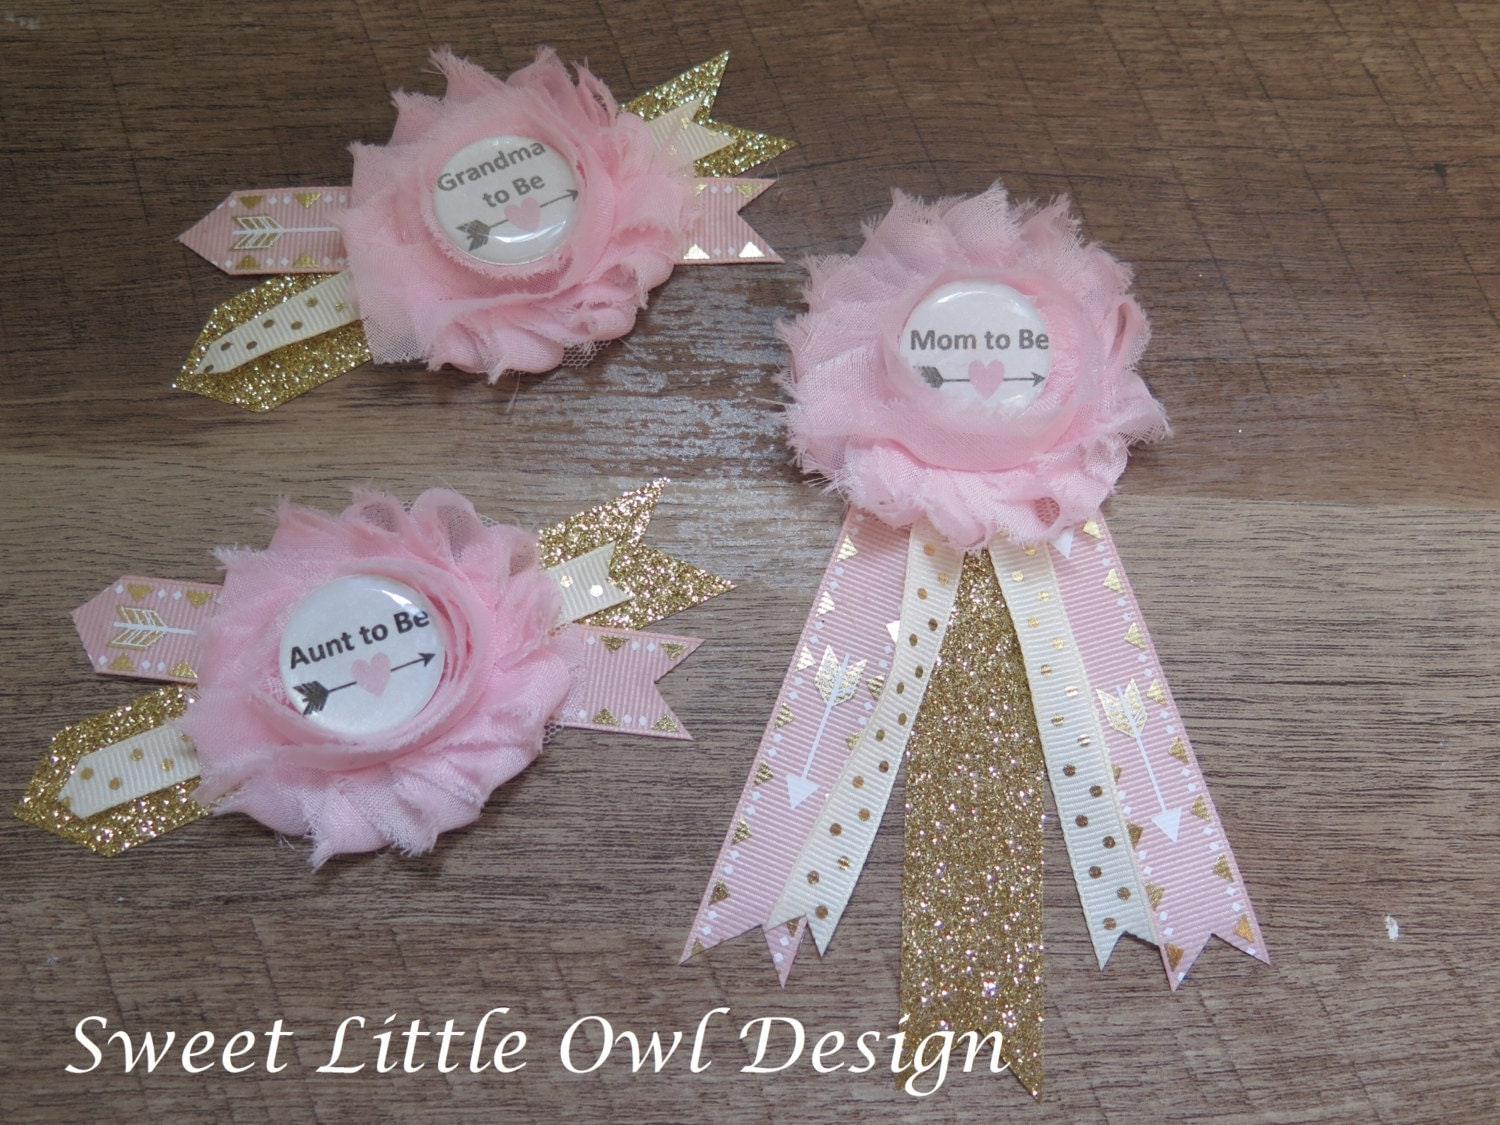 mom to be pin corsage for baby shower pin light pink with